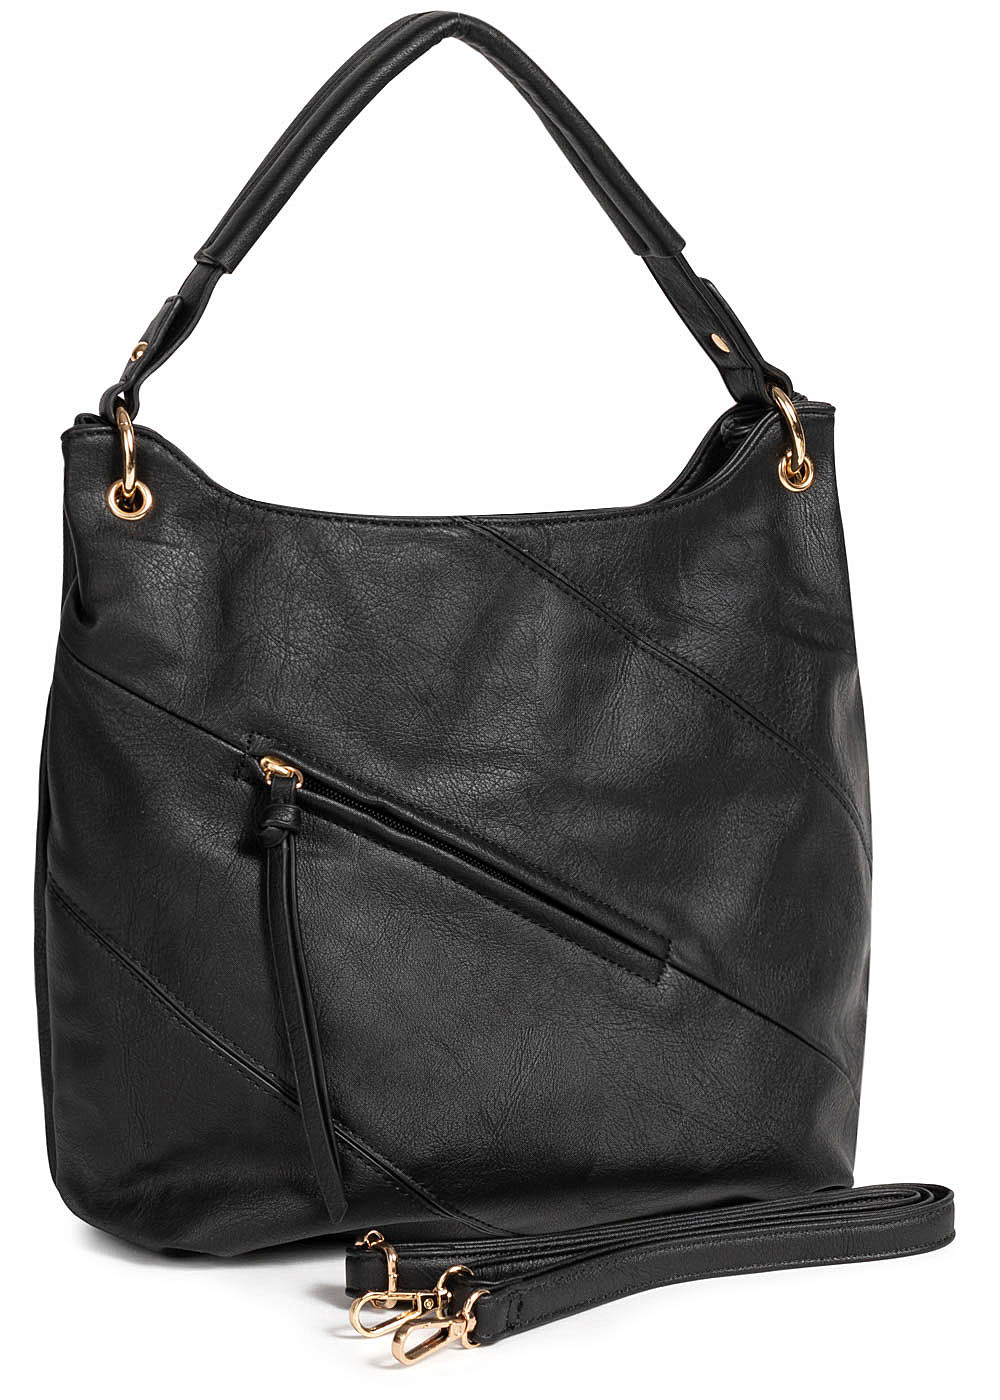 Styleboom Fashion Damen Tote Zip Bag schwarz - Art.-Nr.: 19062548-OS-BK